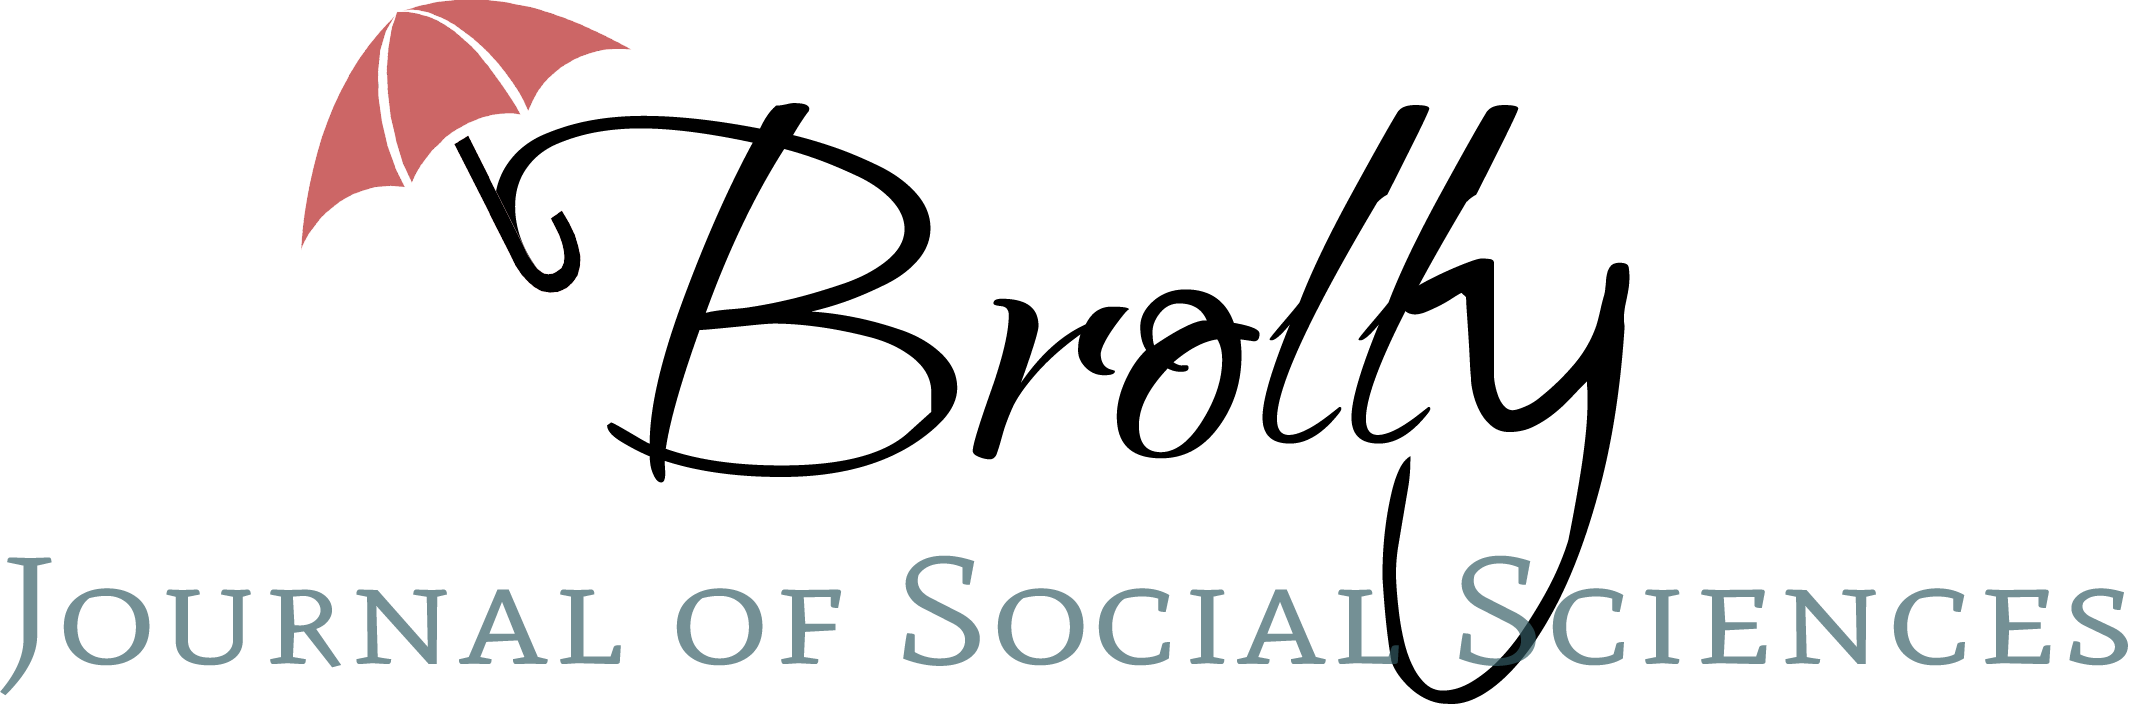 Brolly. Journal of Social Sciences | London Academic Publishing